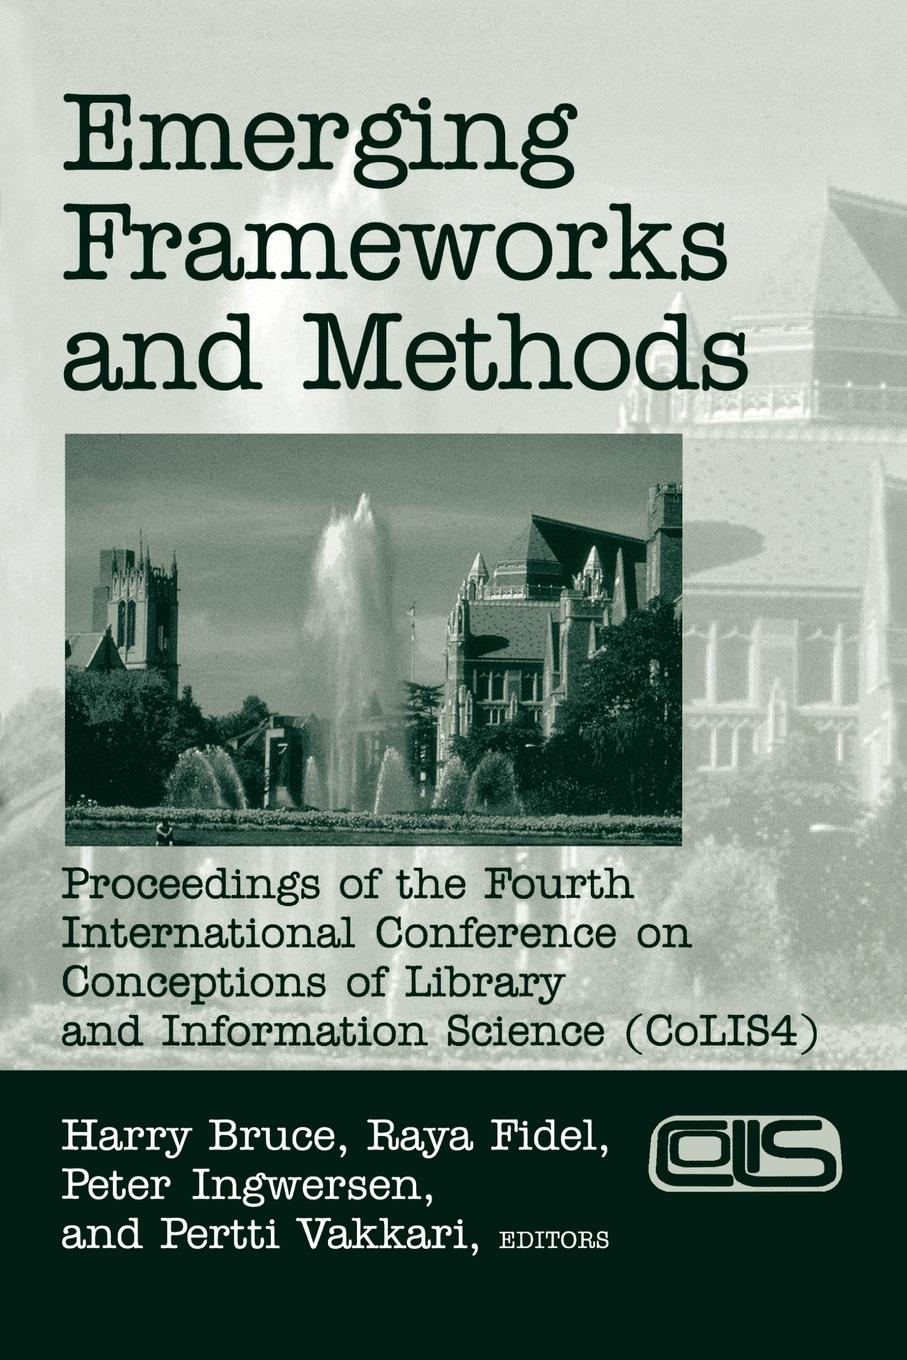 Emerging Frameworks and Methods. Proceedings of the Fourth International Conference on Conceptions of Library and Information Science (Colis 4) рычкова е сост история кружева история страны сборник научных статей конференции history of lace history of the country international scientific and practical conference proceedings